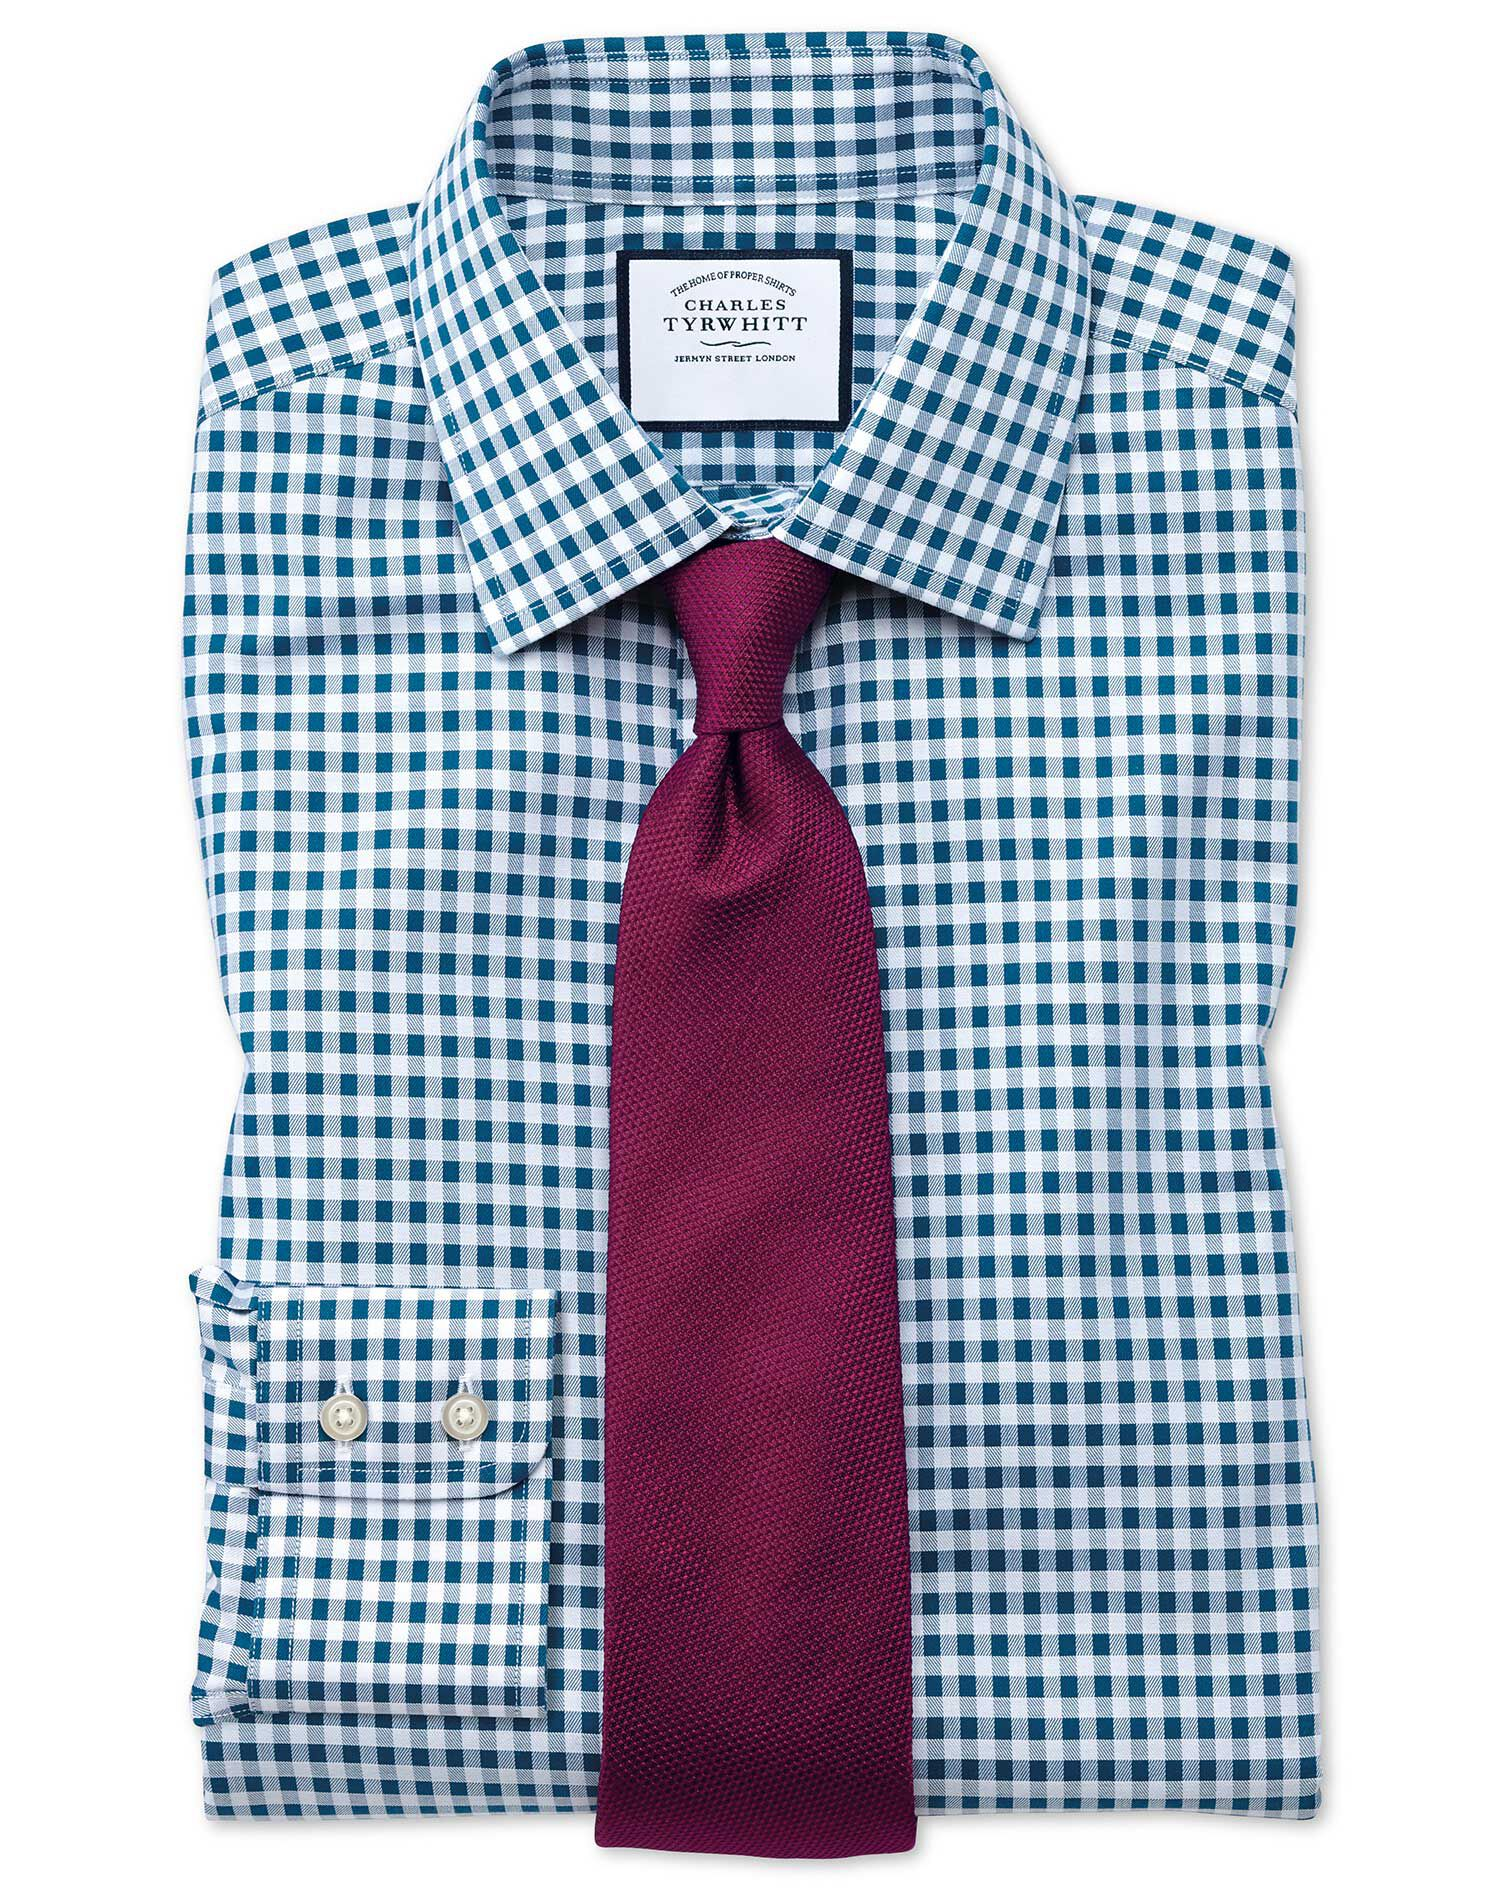 Classic Fit Non-Iron Gingham Teal Cotton Formal Shirt Single Cuff Size 17/36 by Charles Tyrwhitt